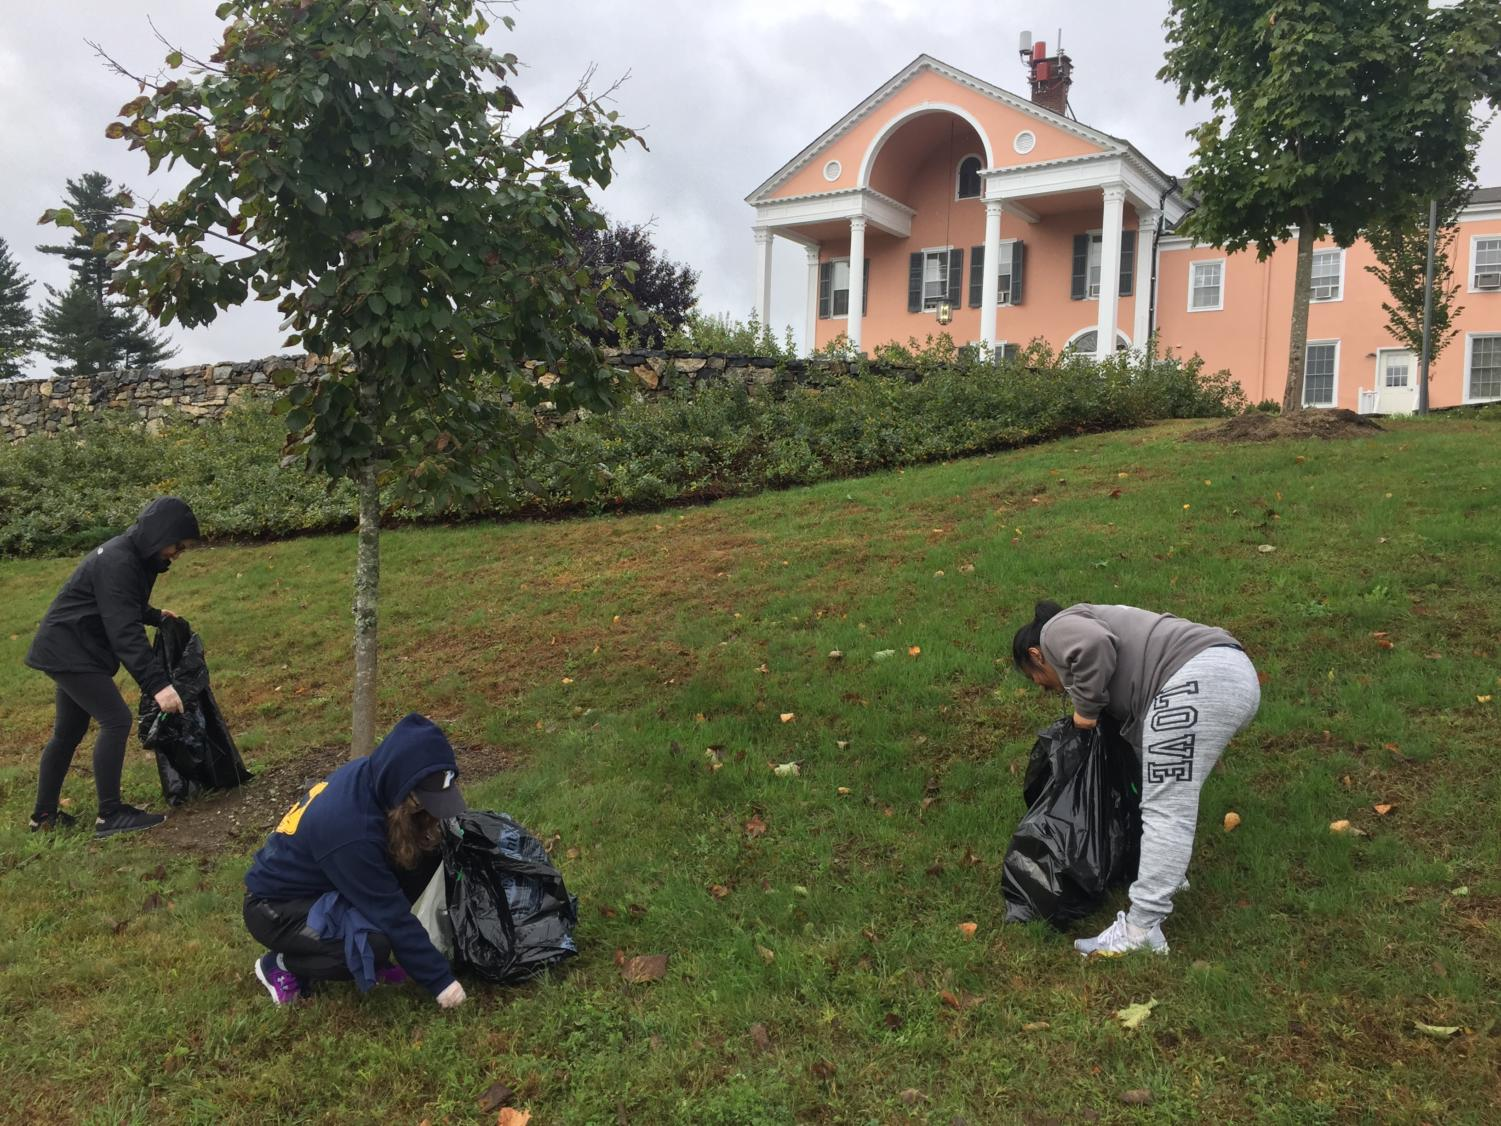 Three students are picking up trash on Choate hill during campus cleanup.